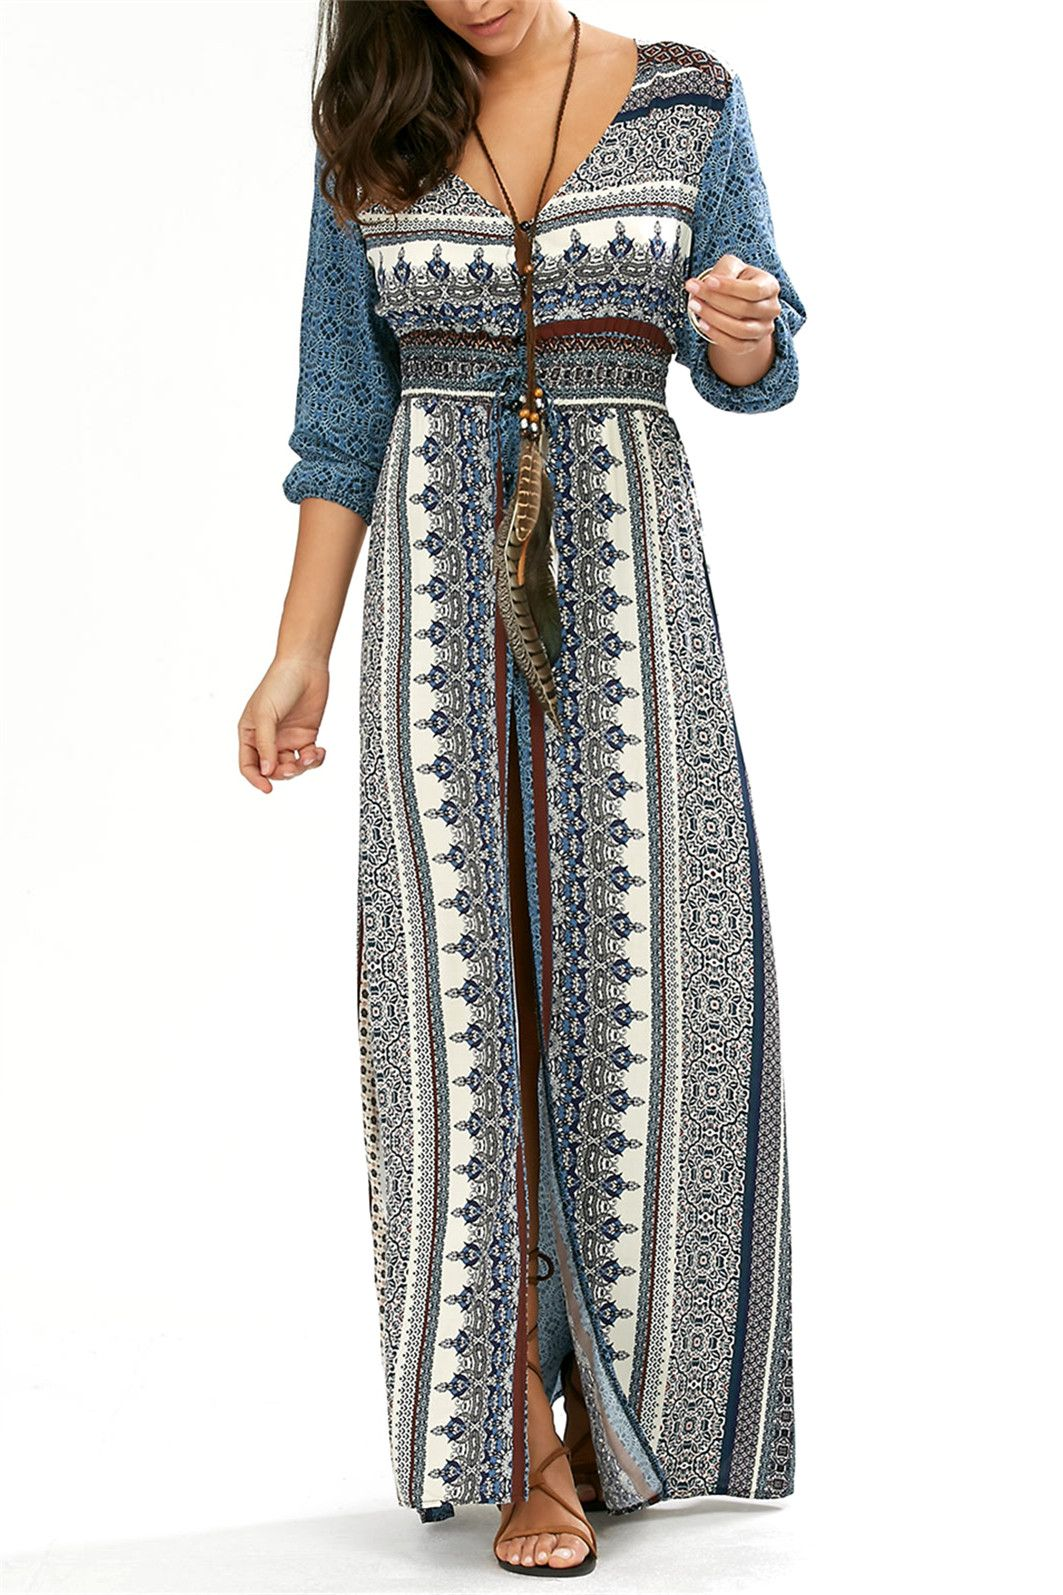 97428424d $18.89 Empire Waist Button Down Bohemian Maxi Dress - Blue Bohemian  Dresses, Boho Dress,